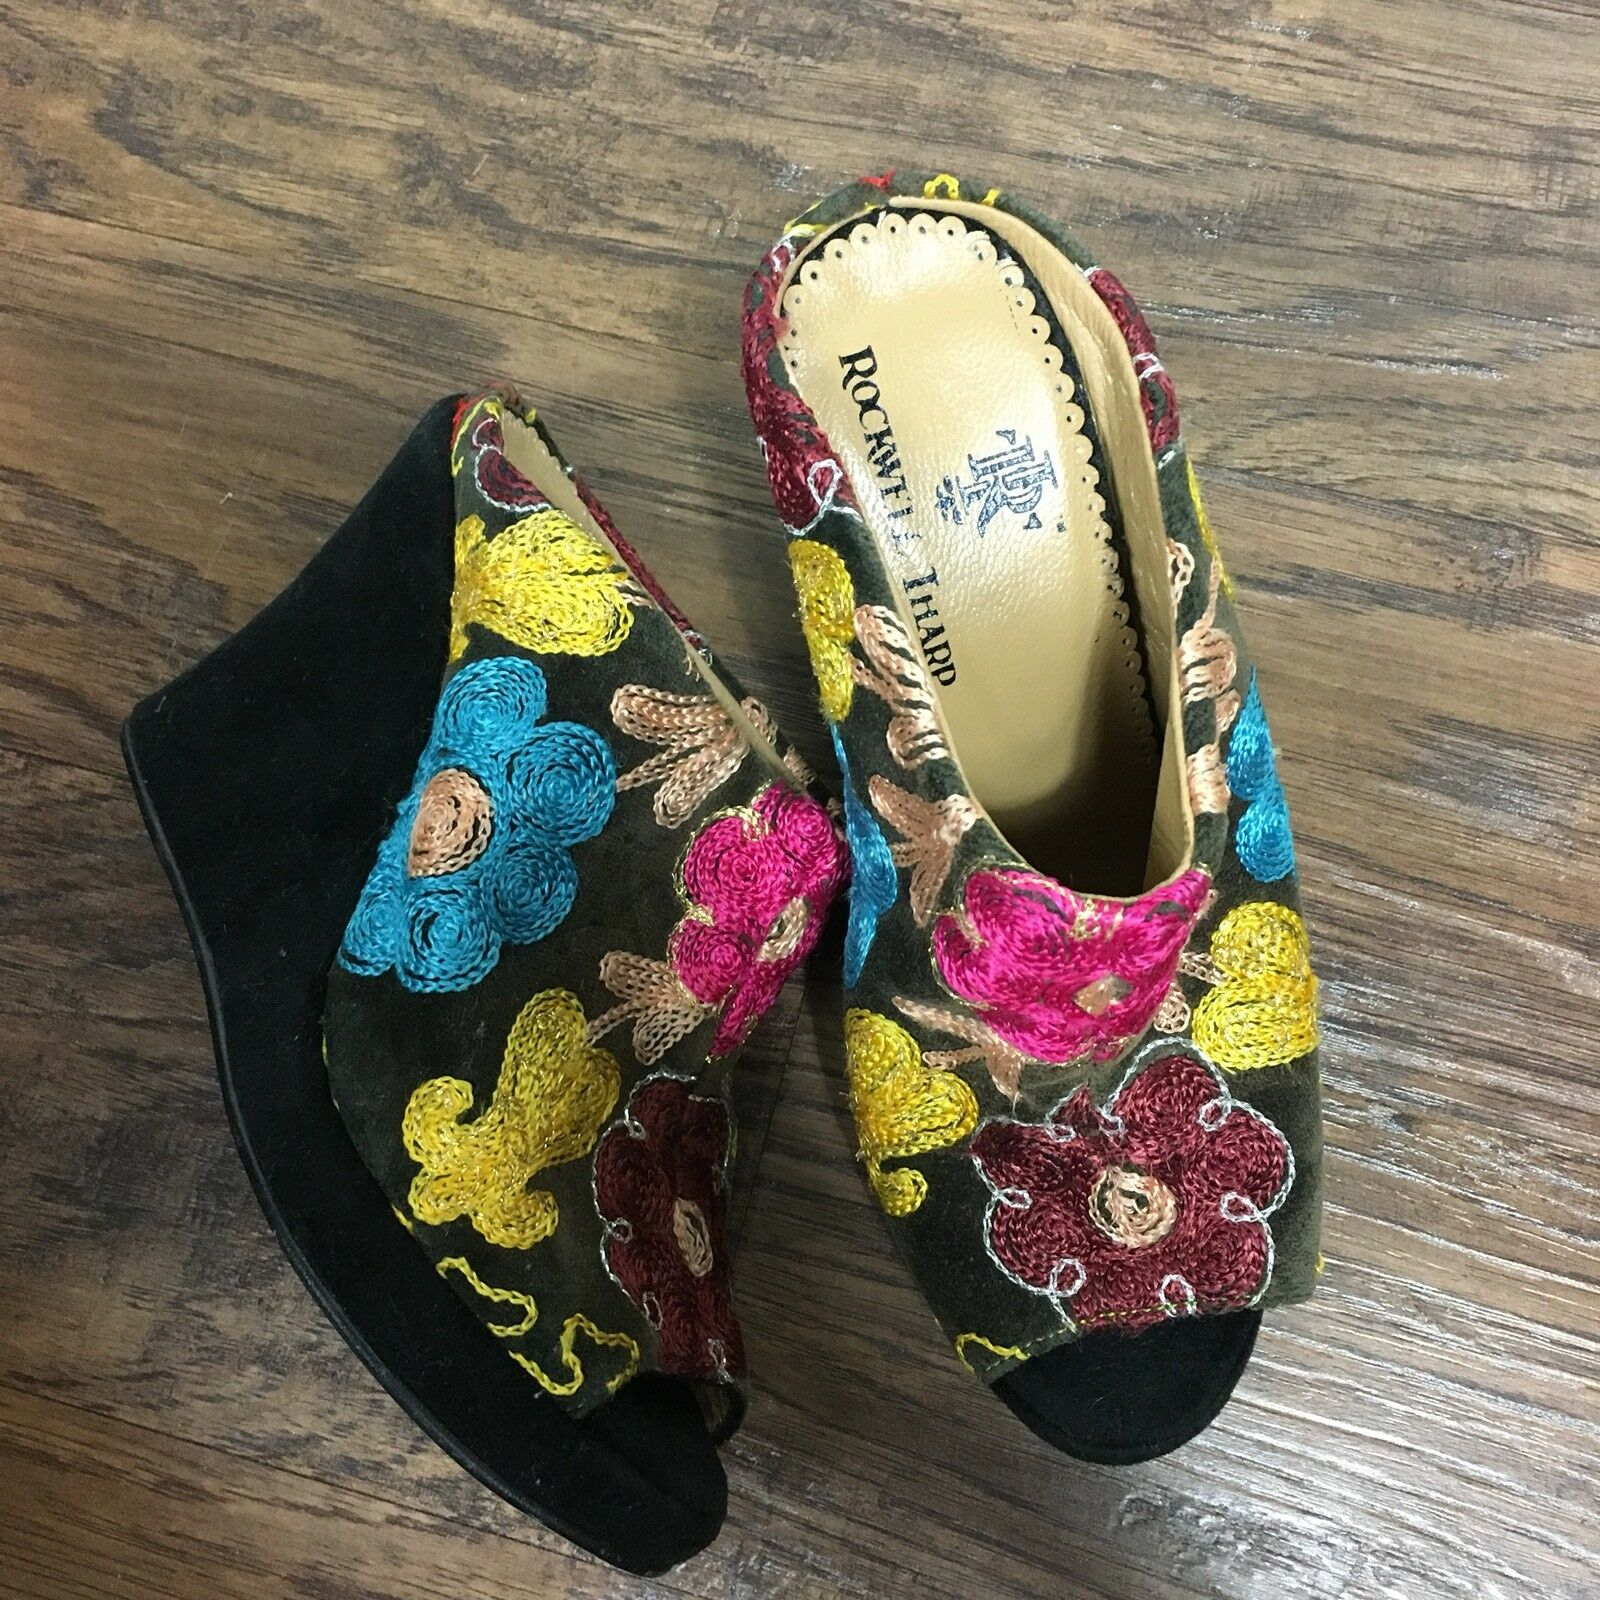 Rockwell Tharp Wedge Sandals 4 35 Black Floral Embroidered Mules